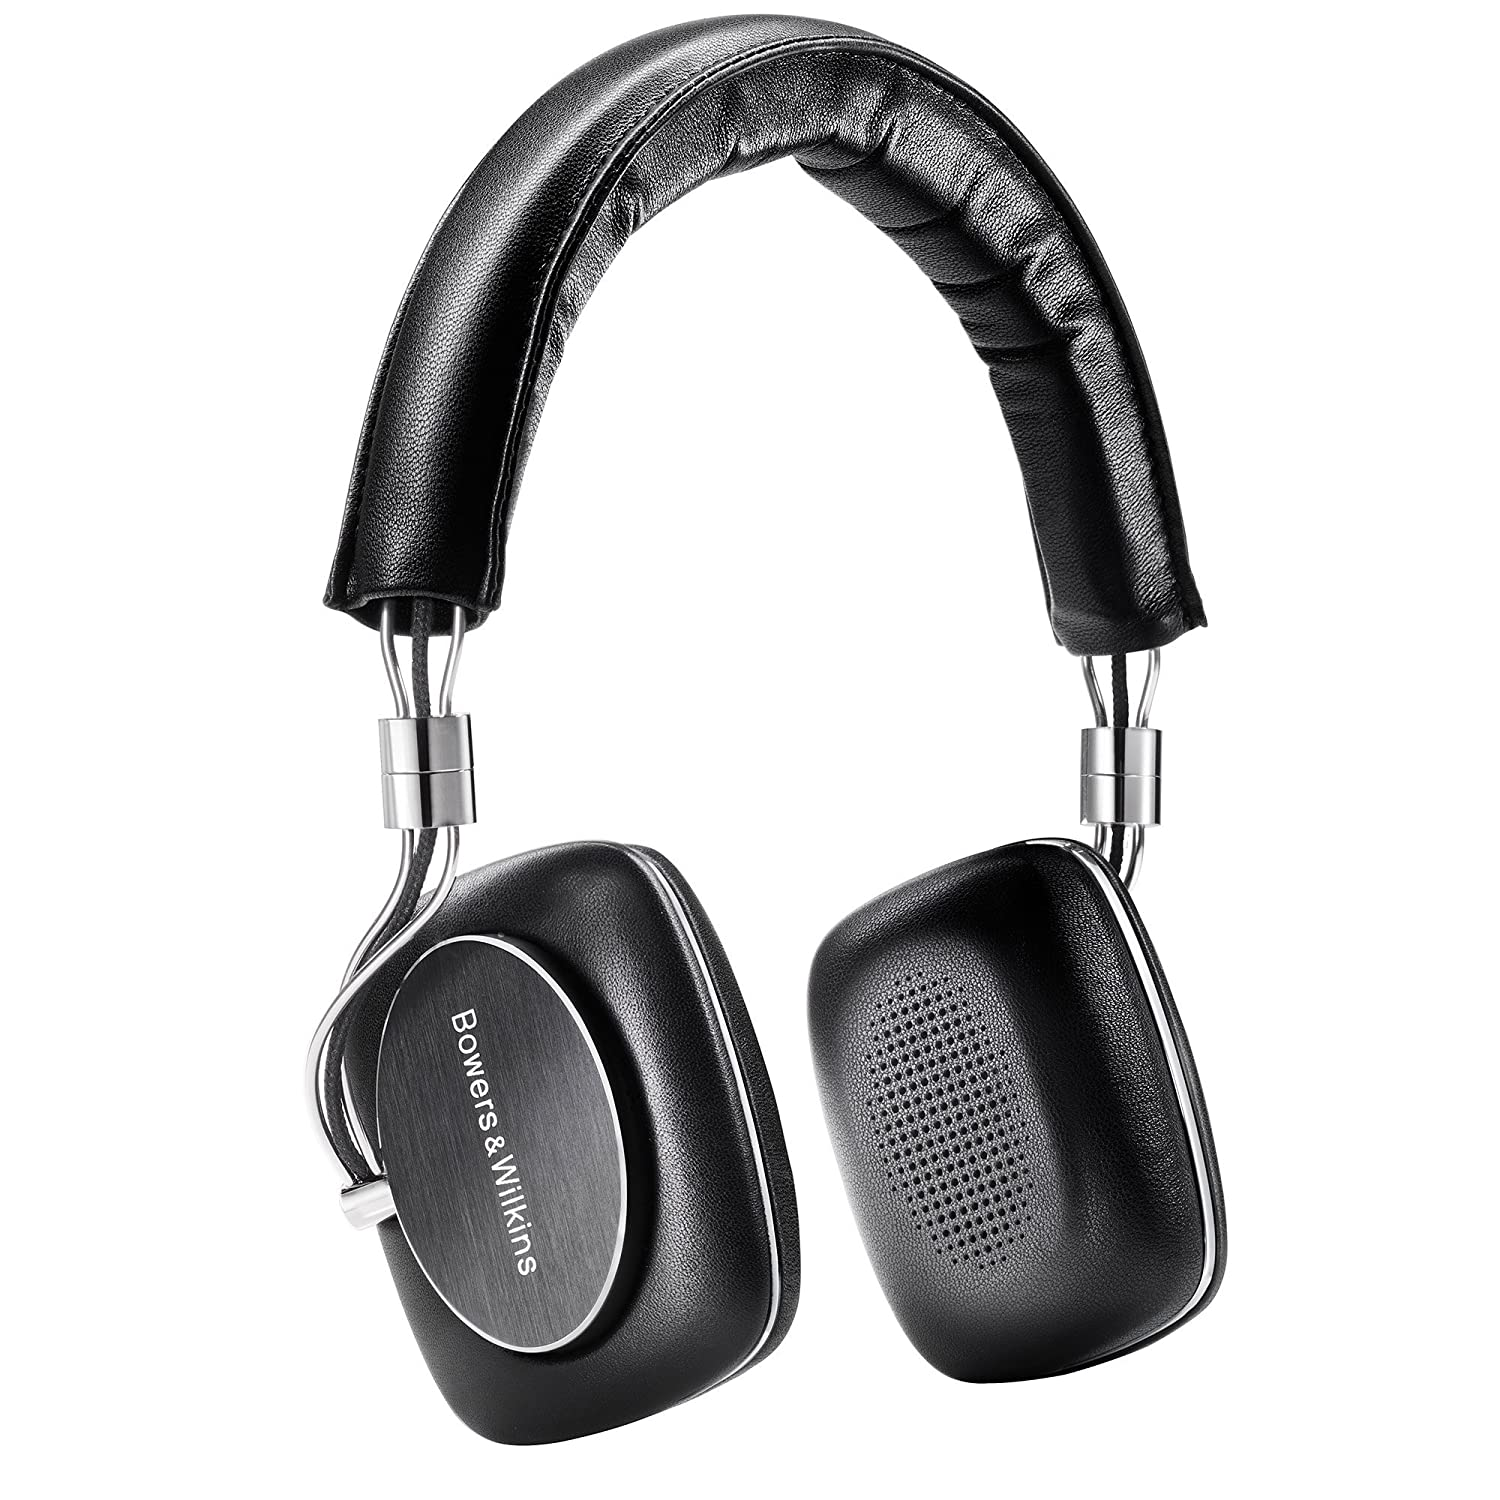 Bowers Wilkins P5 Series 2 On Ear Headphones With Hifi Px Active Noise Cancelling Wireless Drivers Wired Black Home Audio Theater